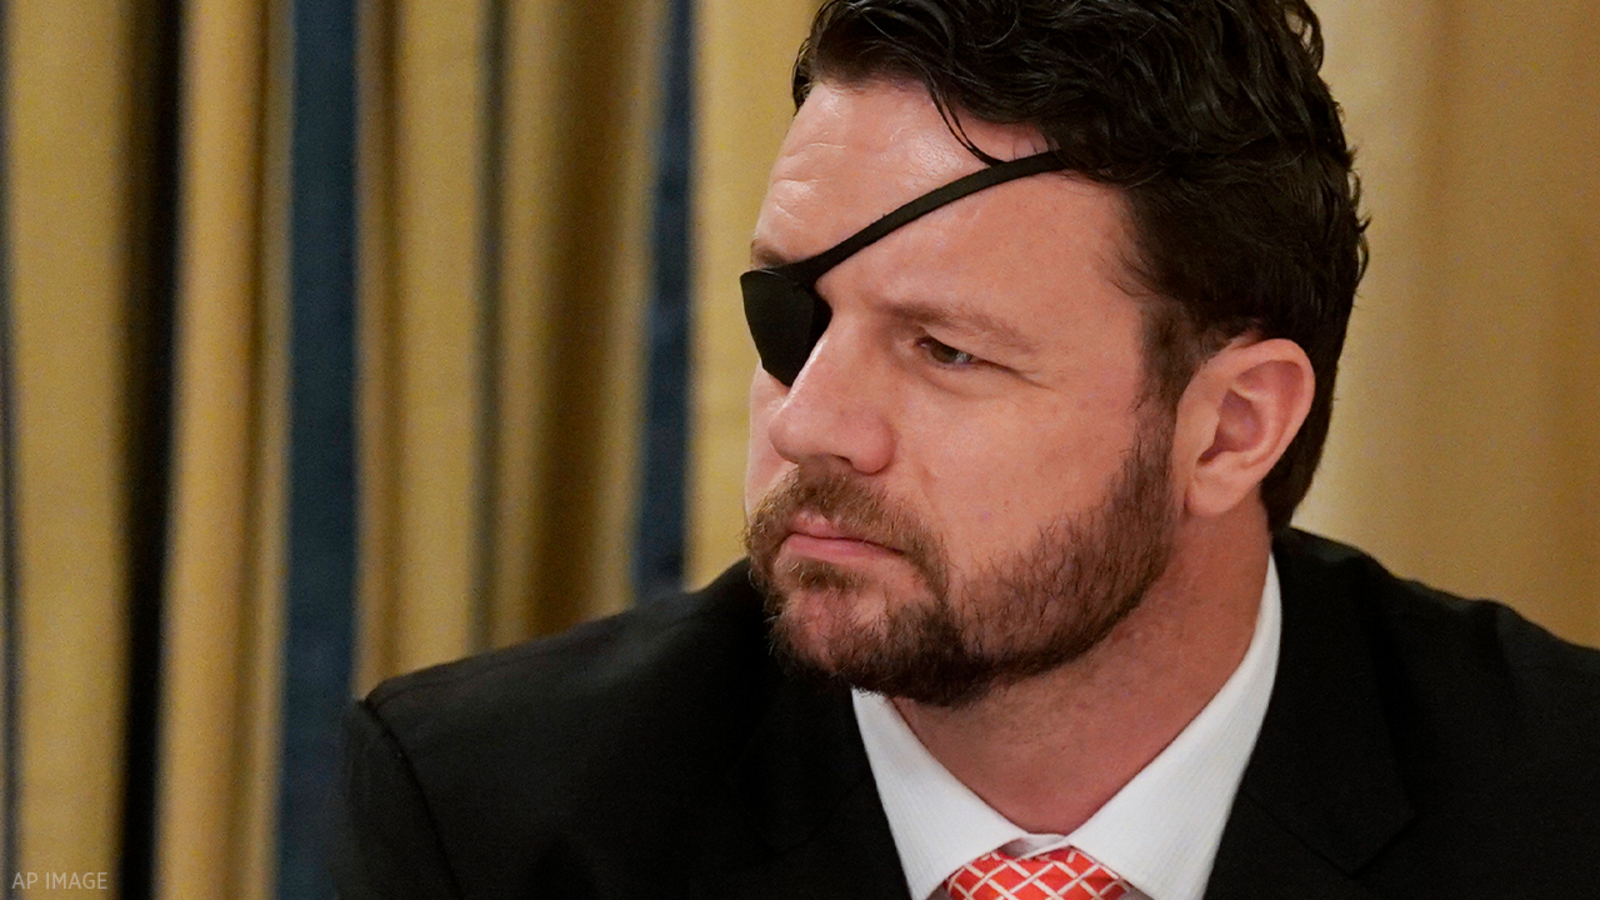 ABC13 Exclusive: Rep. Dan Crenshaw talks emergency eye surgery and recovery ahead